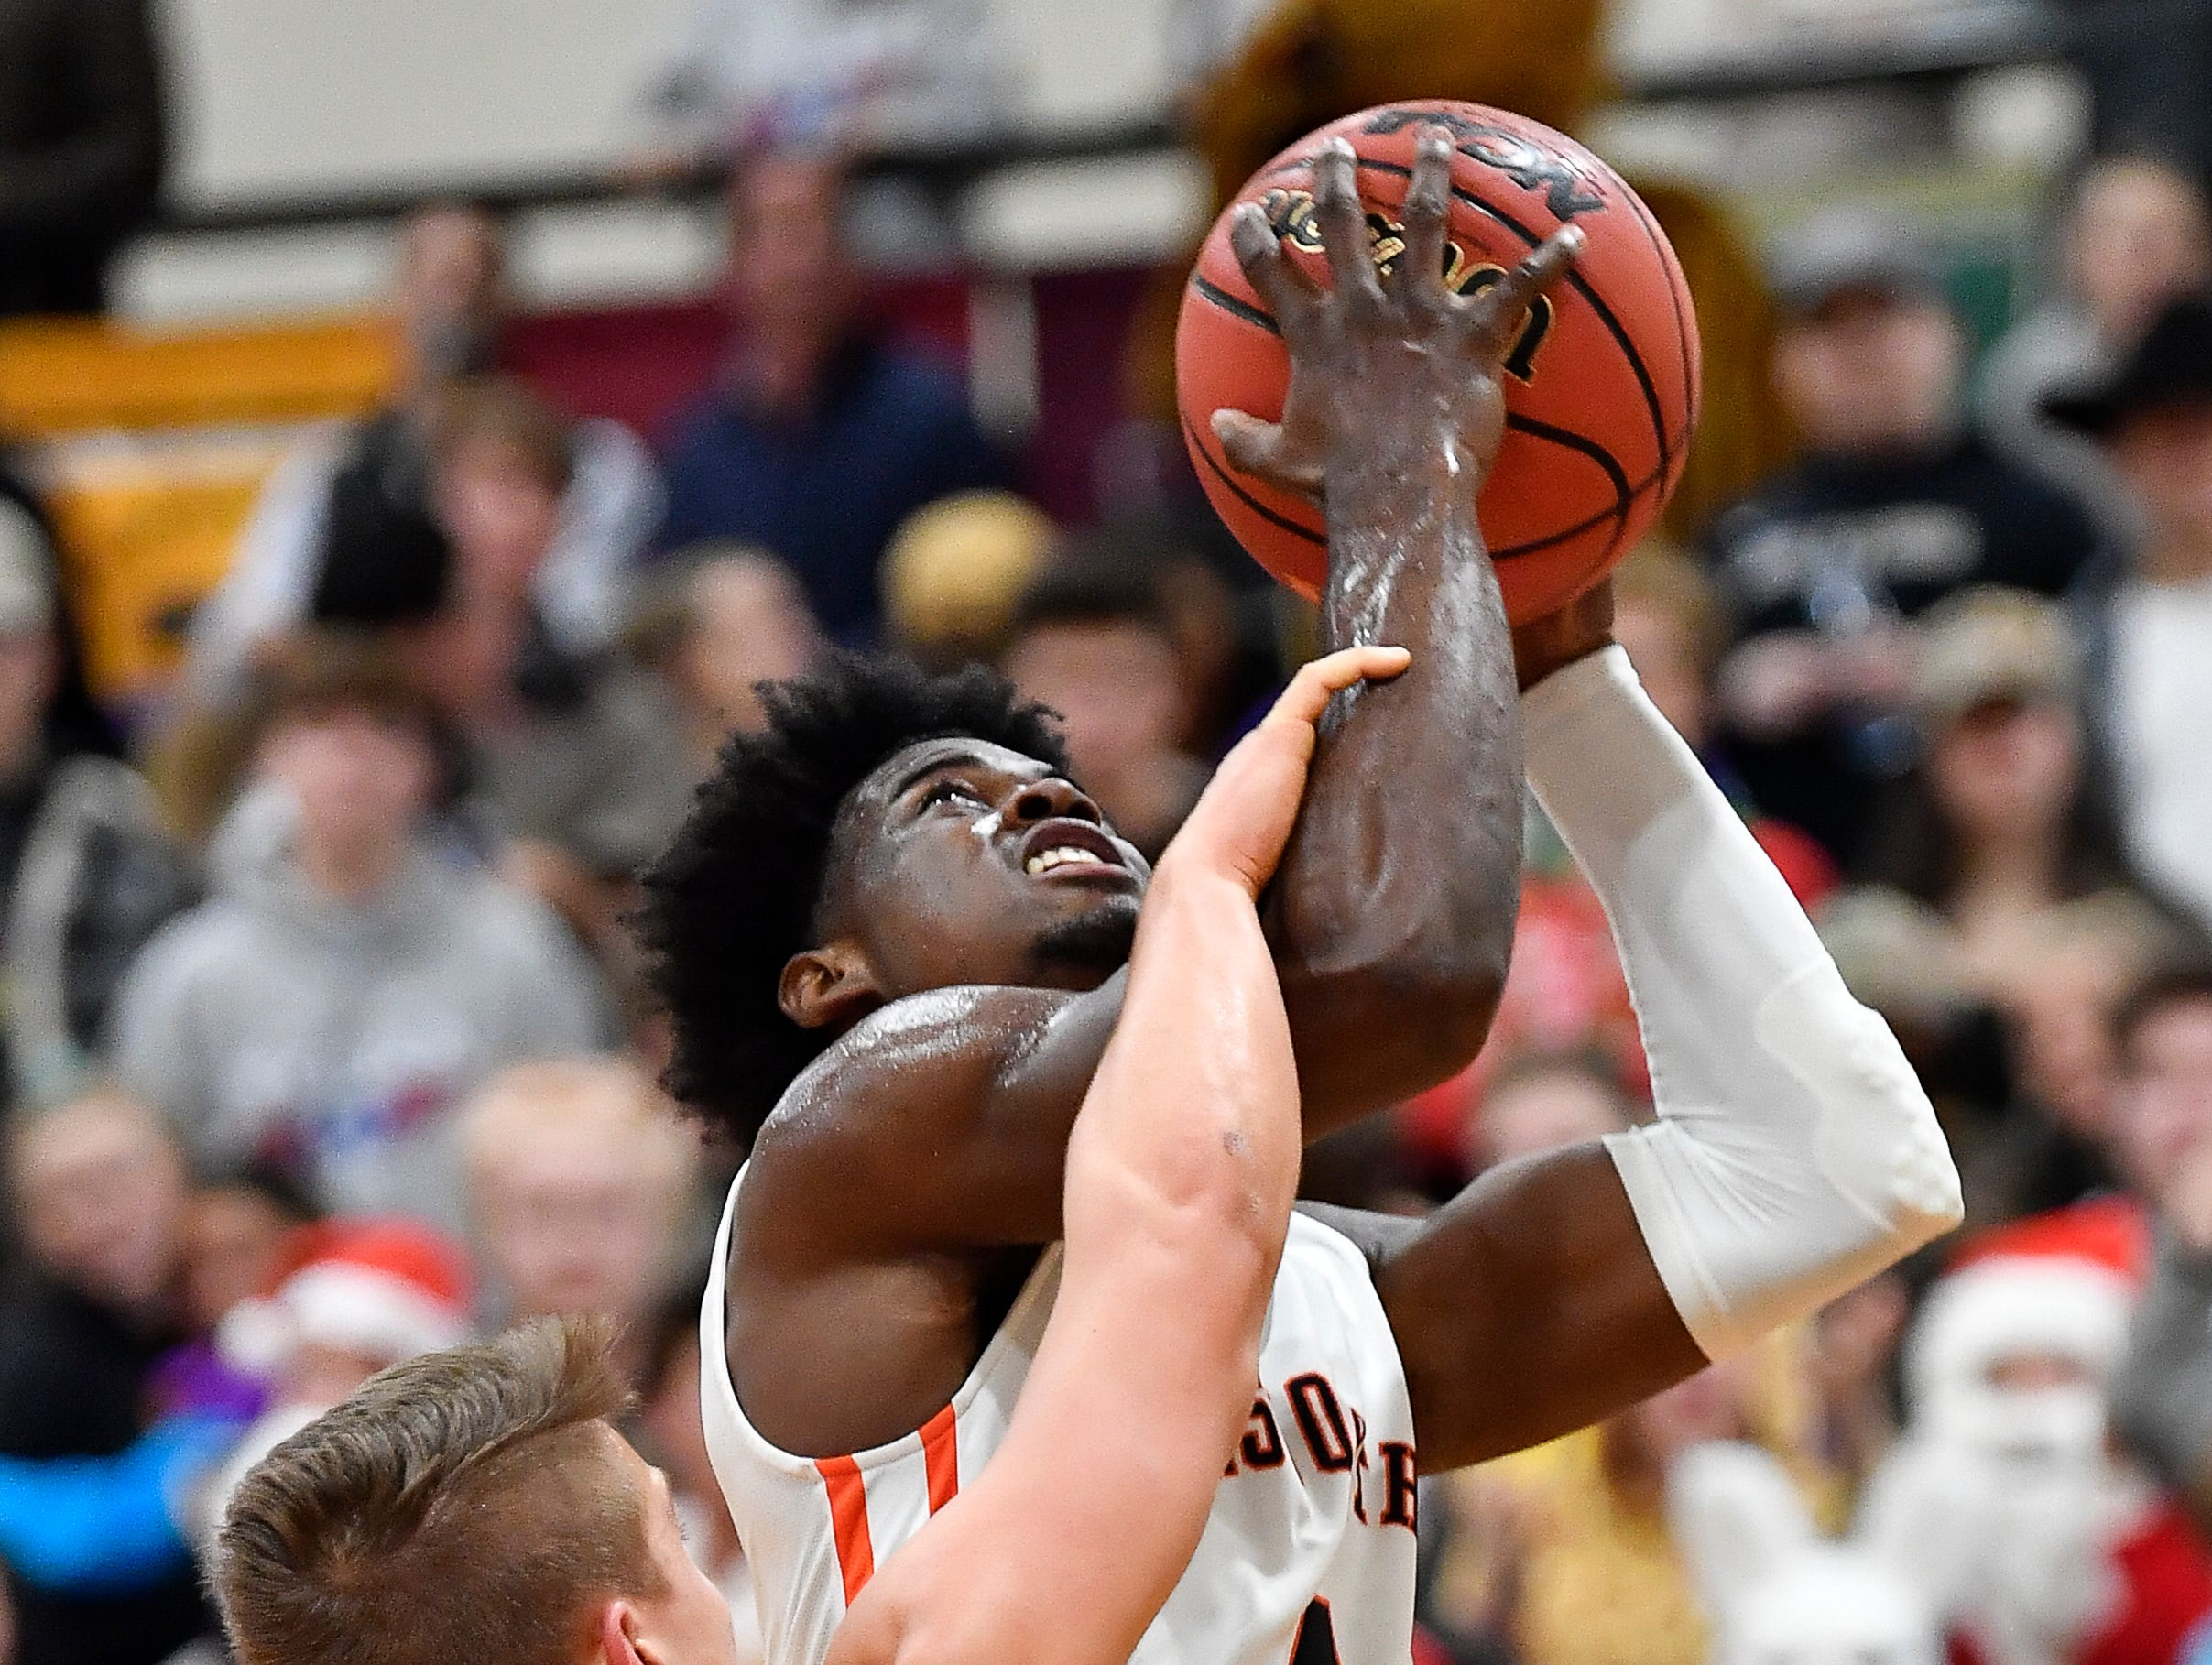 Ensworth forward Keshawn Lawrence (4) shoots CPA's McNeill Stout (5) during their game at Ensworth High School Tuesday, Dec. 11, 2018, in Nashville, Tenn.